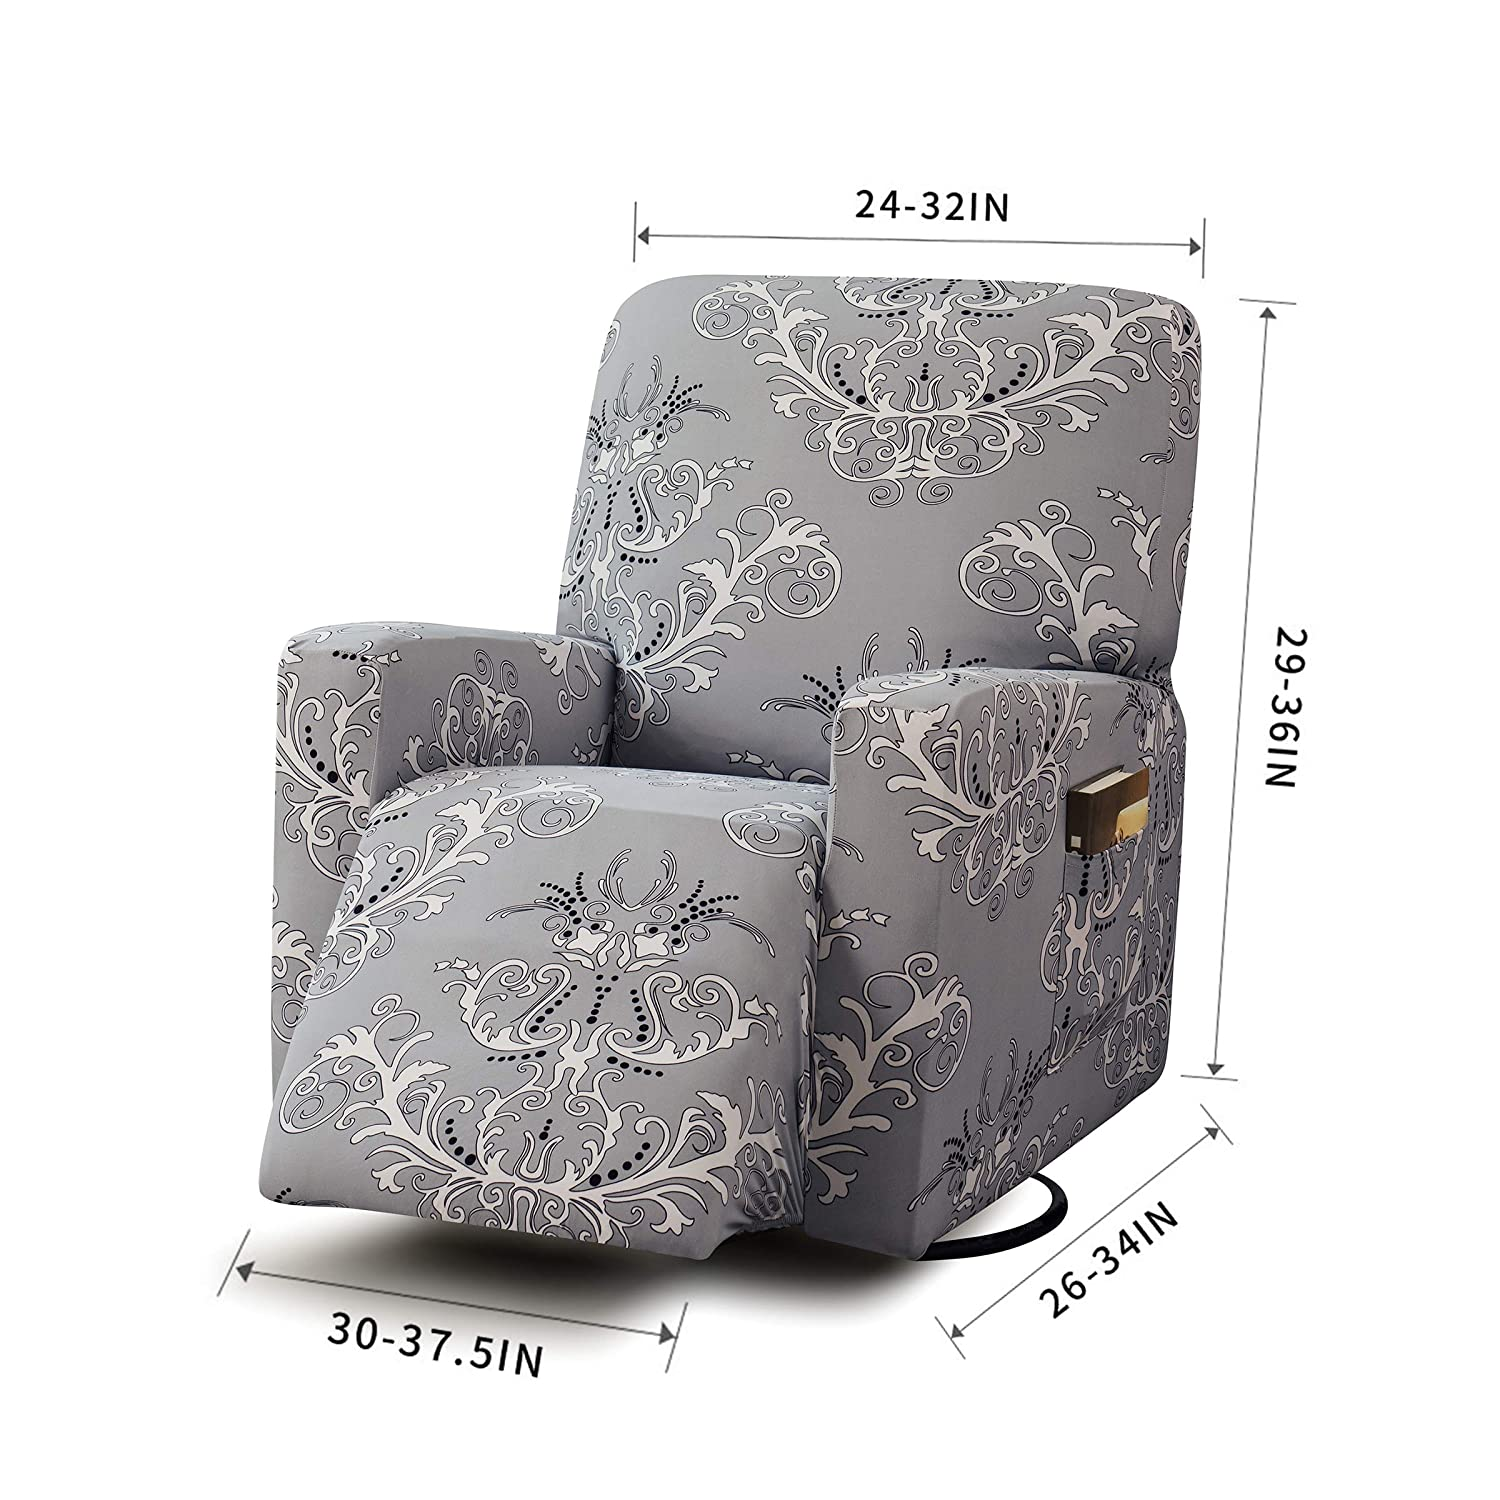 Amaranth Print TIKAMI Stretch Recliner Chair Covers Washable Sofa Slipcovers Furniture Protector with Pocket for Pets and Kids